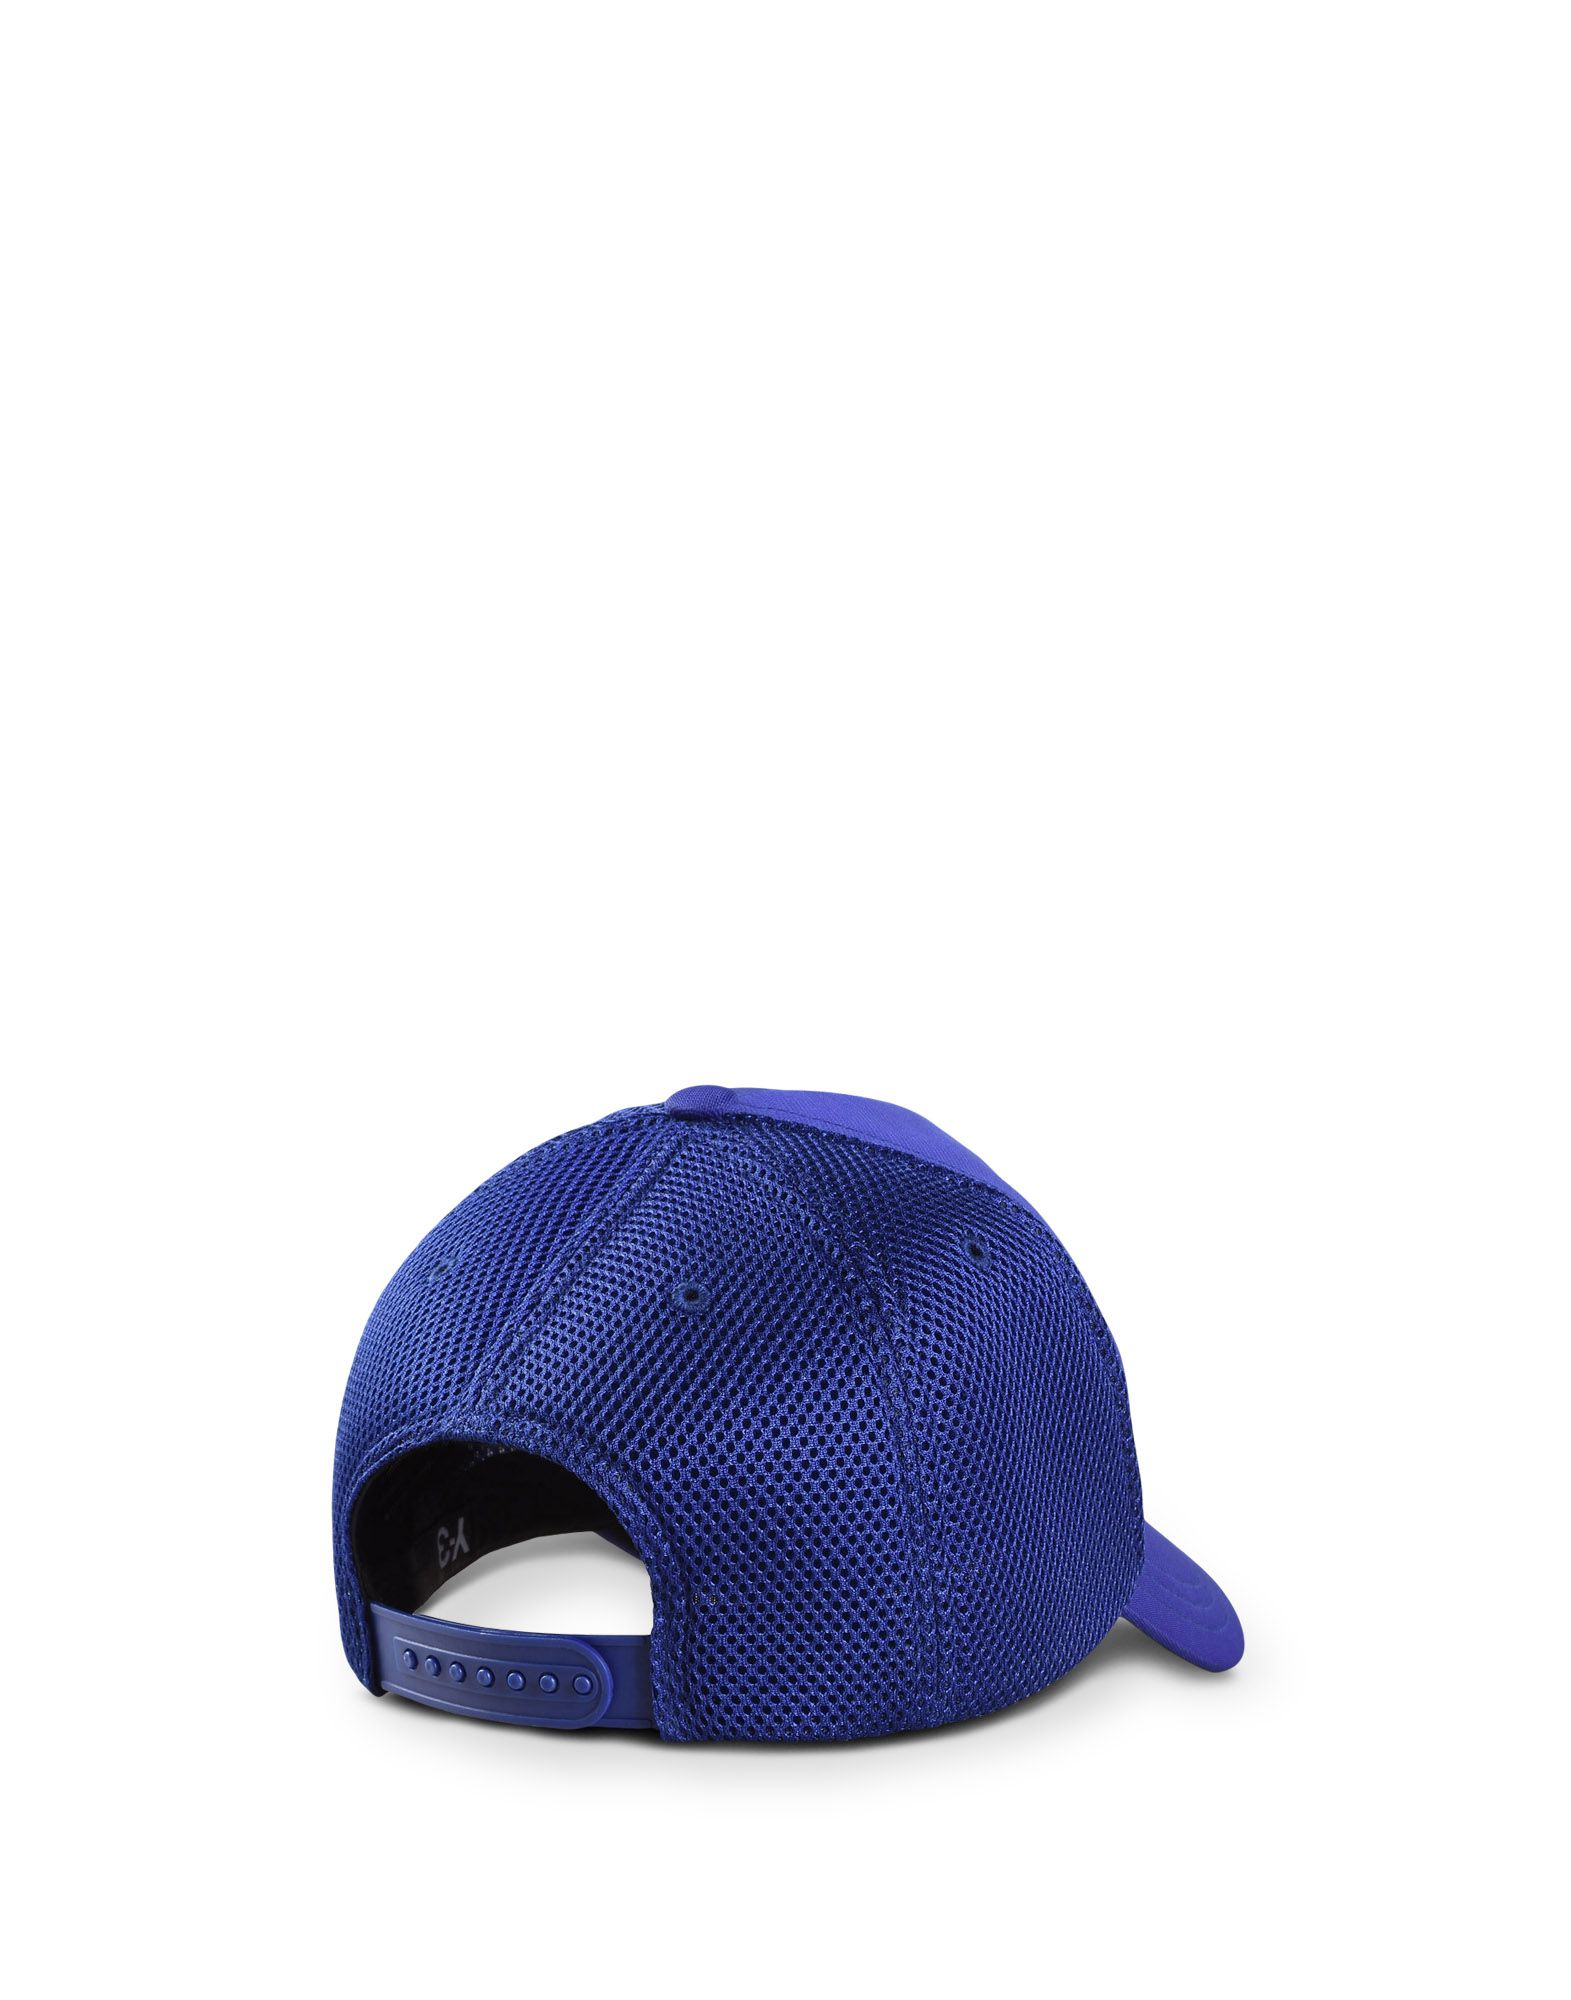 Y-3 TRUCK PURPLE HAT OTHER ACCESSORIES unisex Y-3 adidas